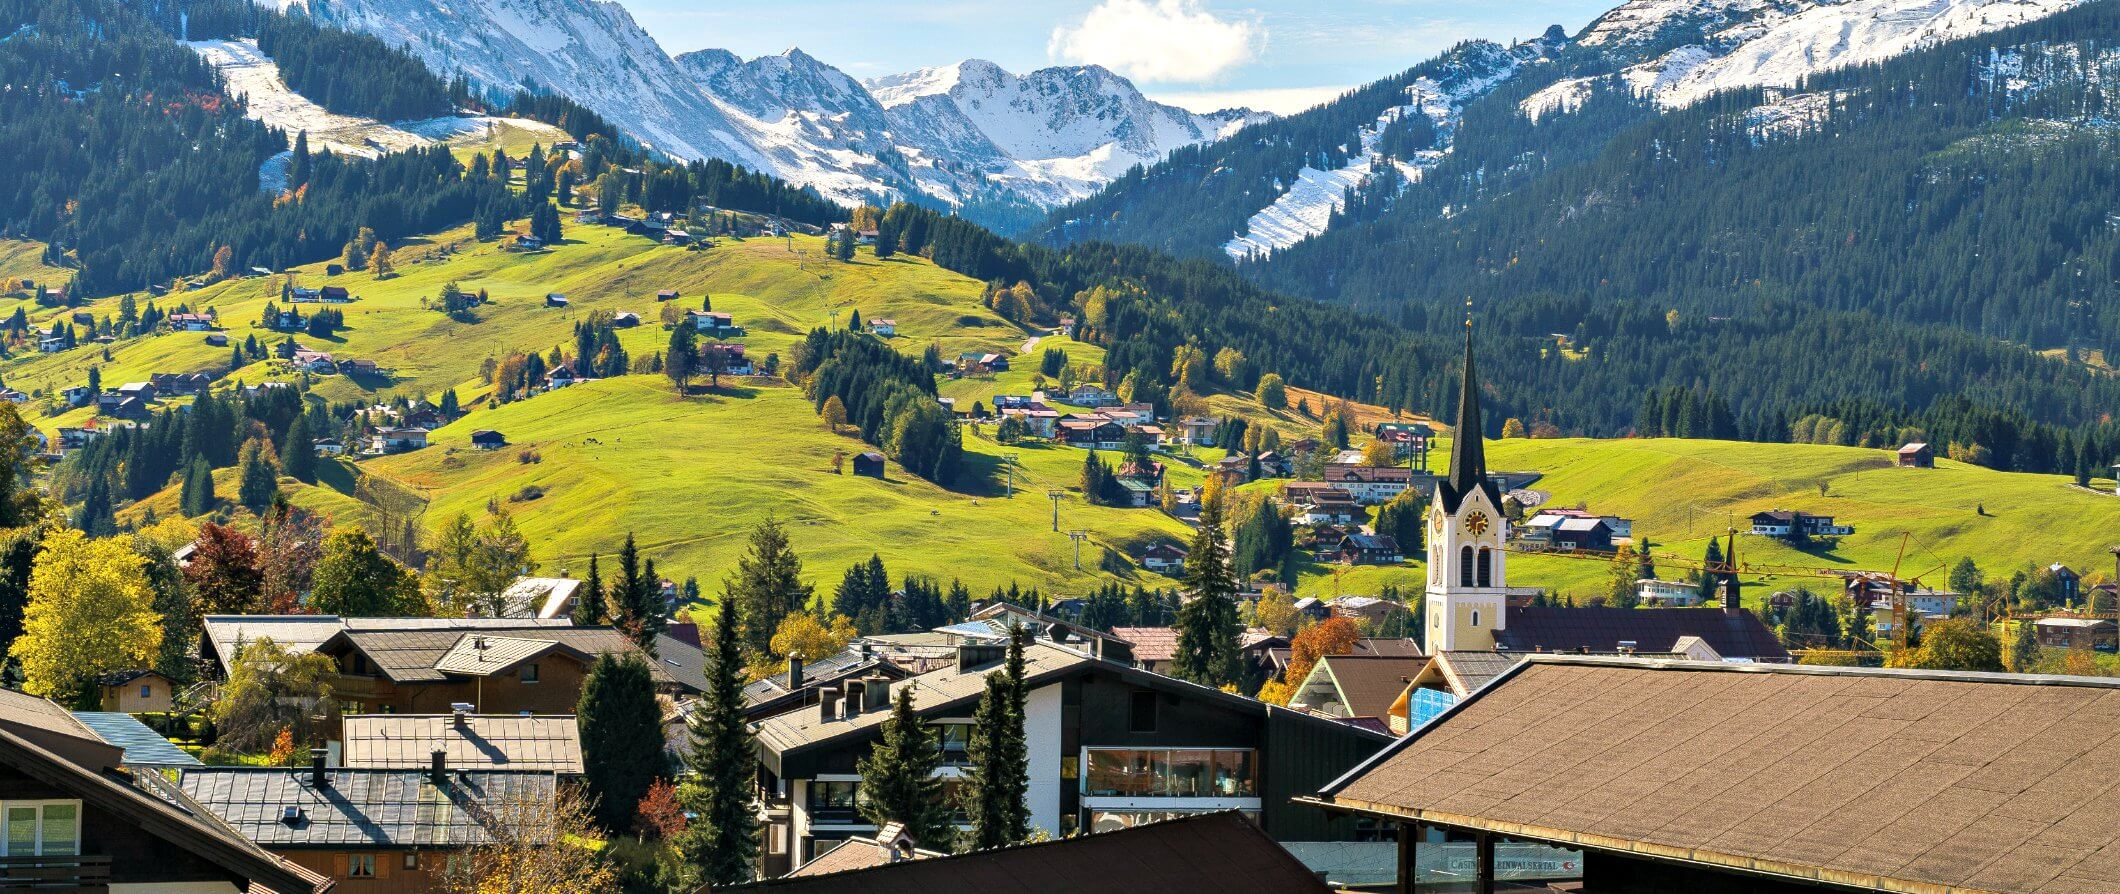 Backpacking Austria Travel Guide 2020: Everything You Need ...